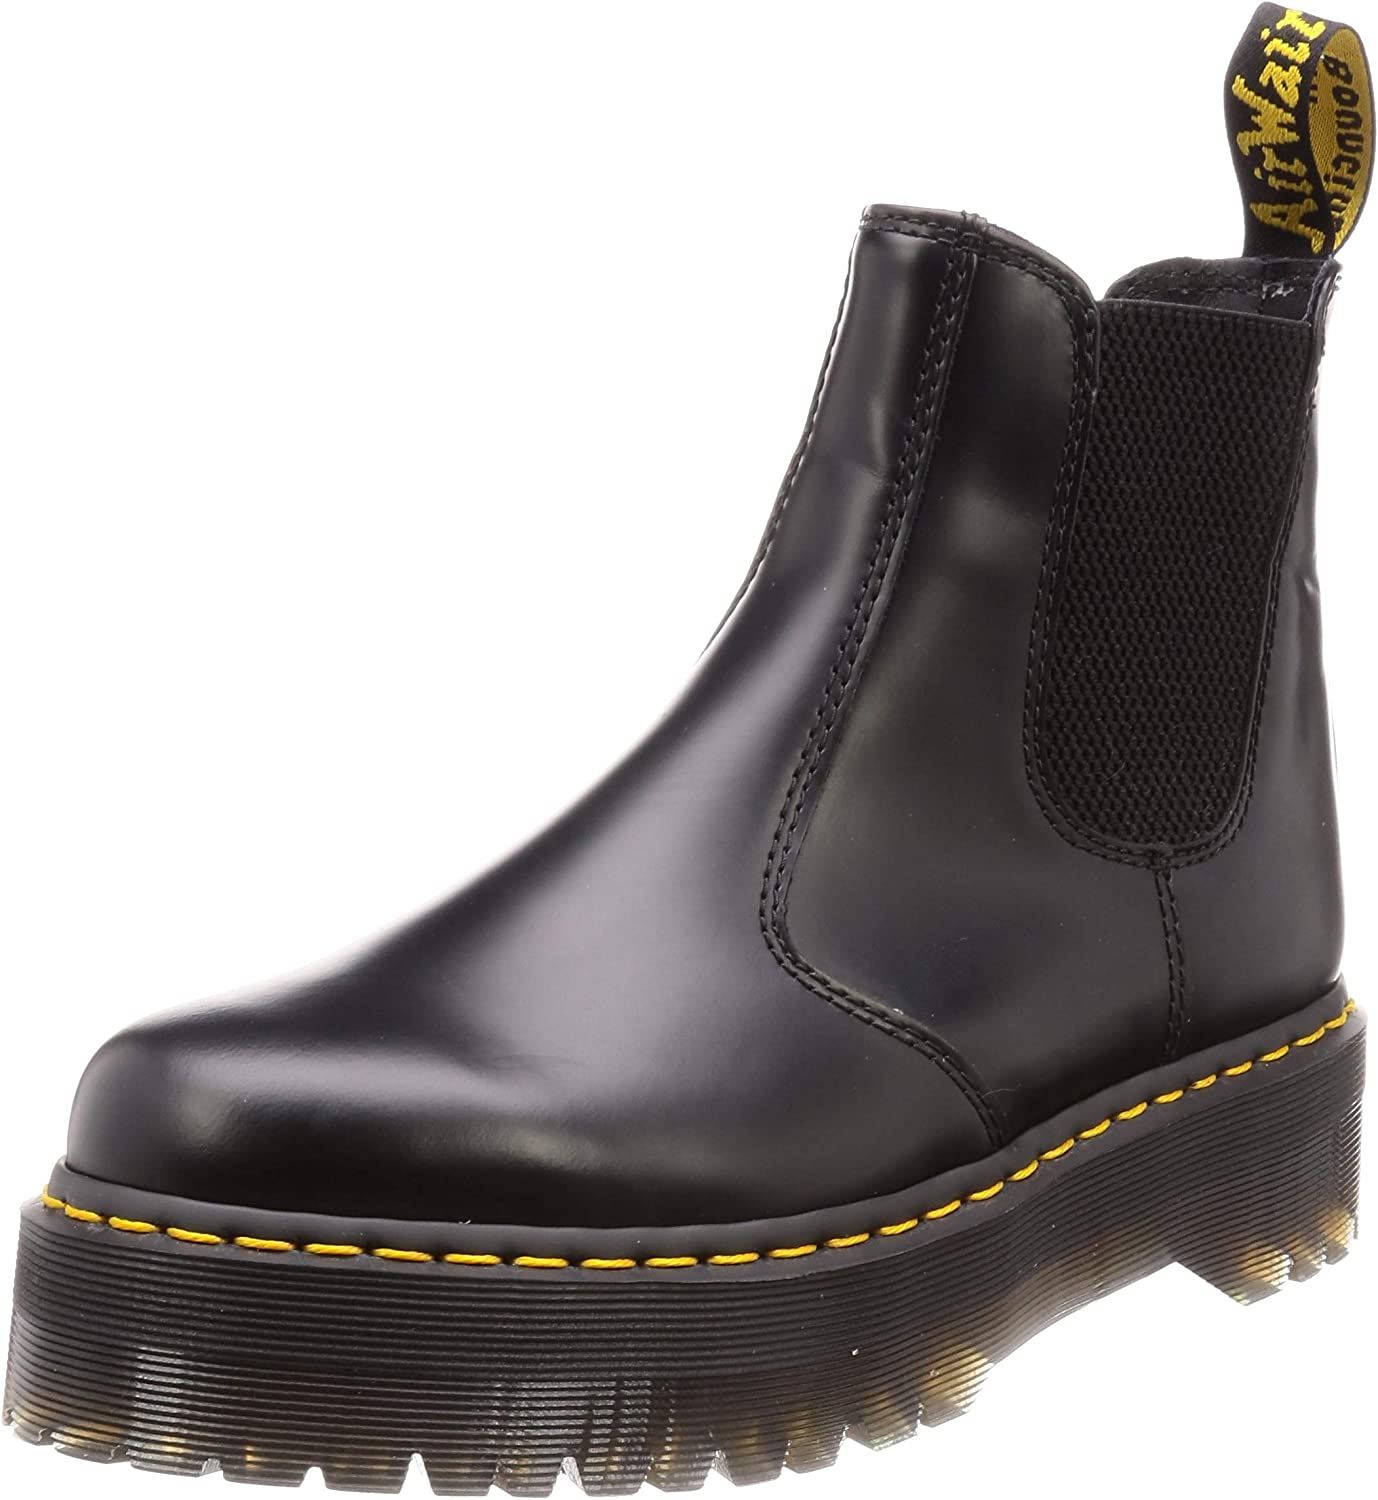 Unisex Unisex Unisex Vuxna Dr Martens 2976 Quad Polerad Smooth Leather Platform Boot  den klassiska stilen